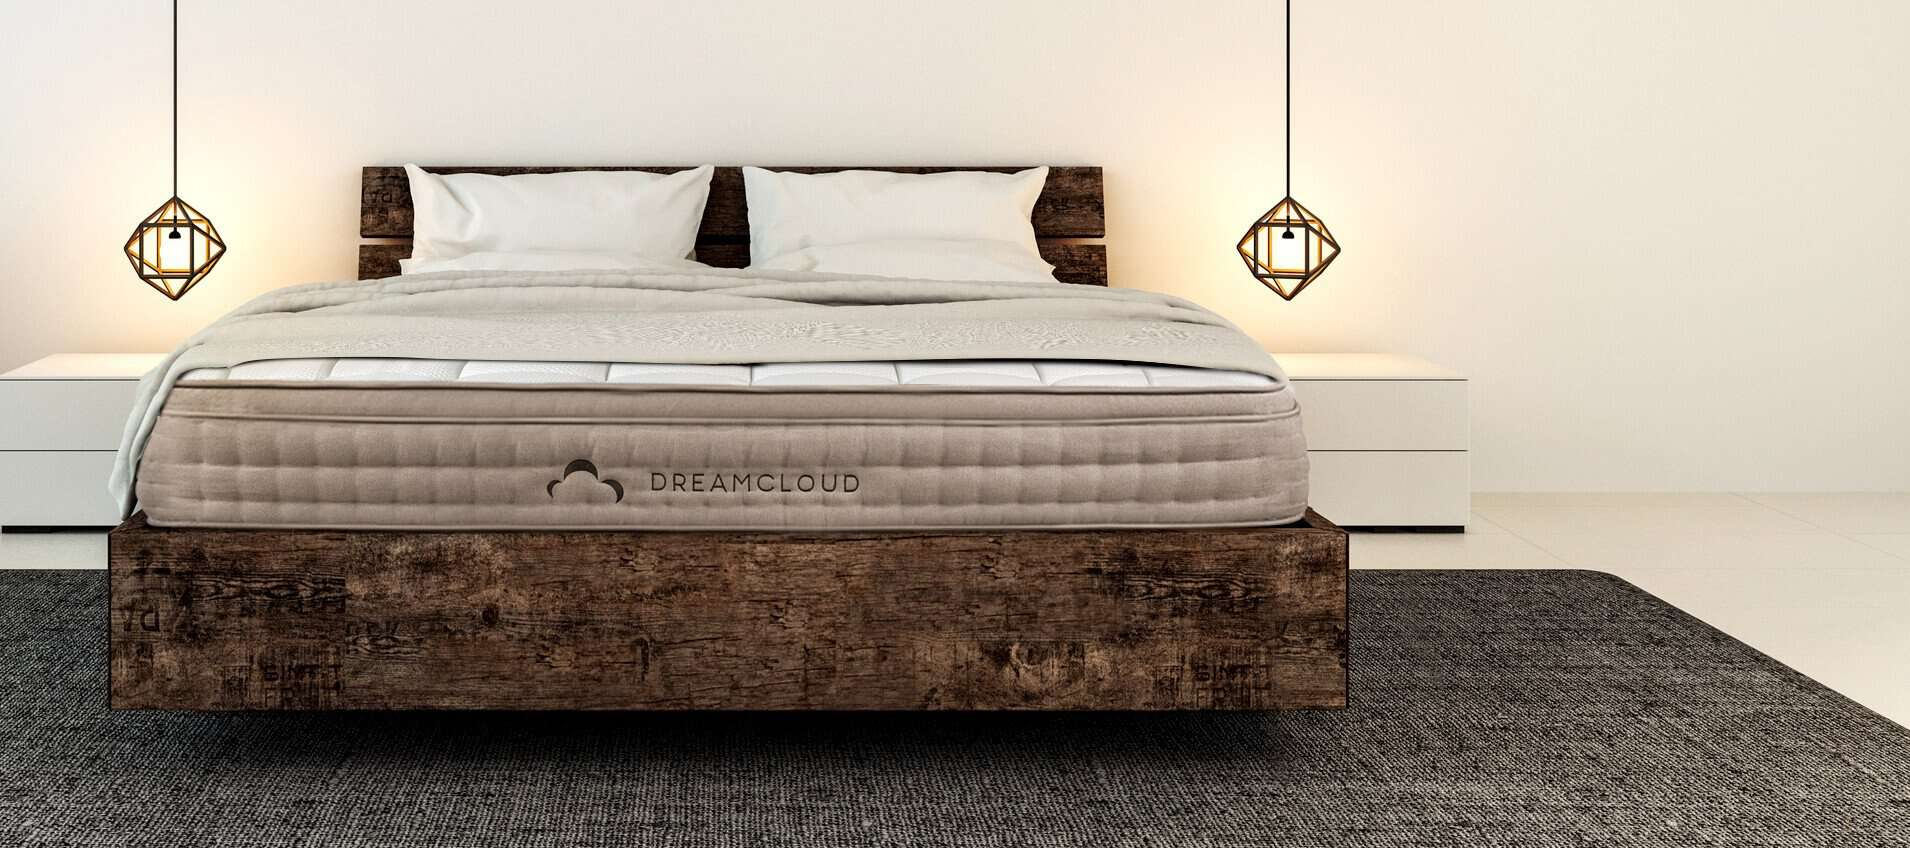 a bedsonline reviews looks from only product not like mattress review the beauty igravity luxury made